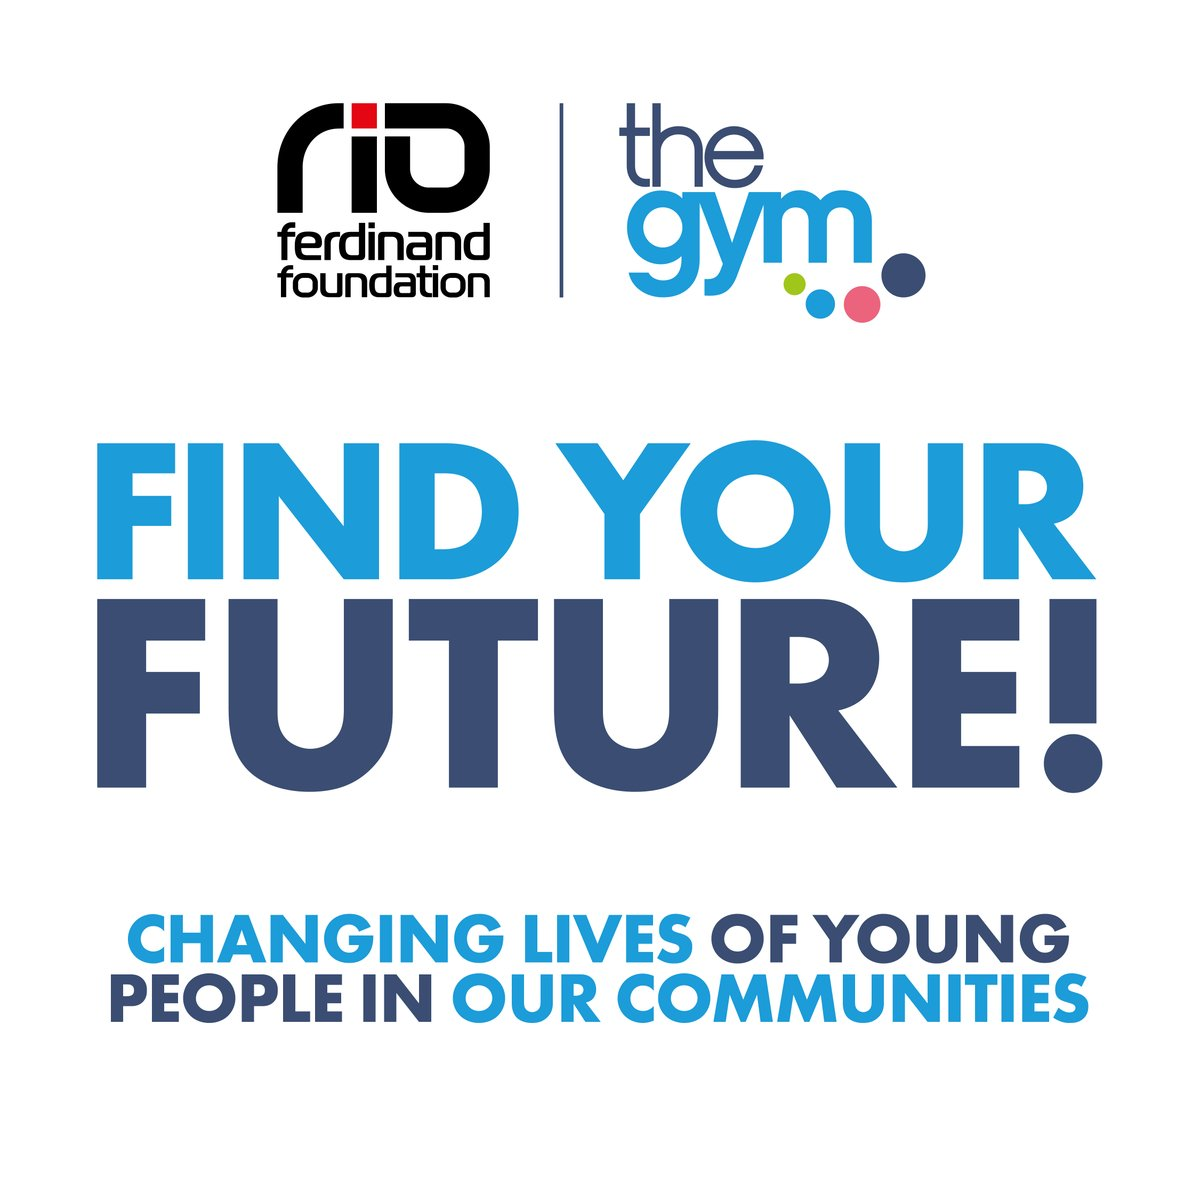 So pleased to see these two great organisations working together @riofoundation @TheGymGroup - investing in skills & delivering pathways to employment that are key for young people right now!   Look forward to getting involved 👌🏽